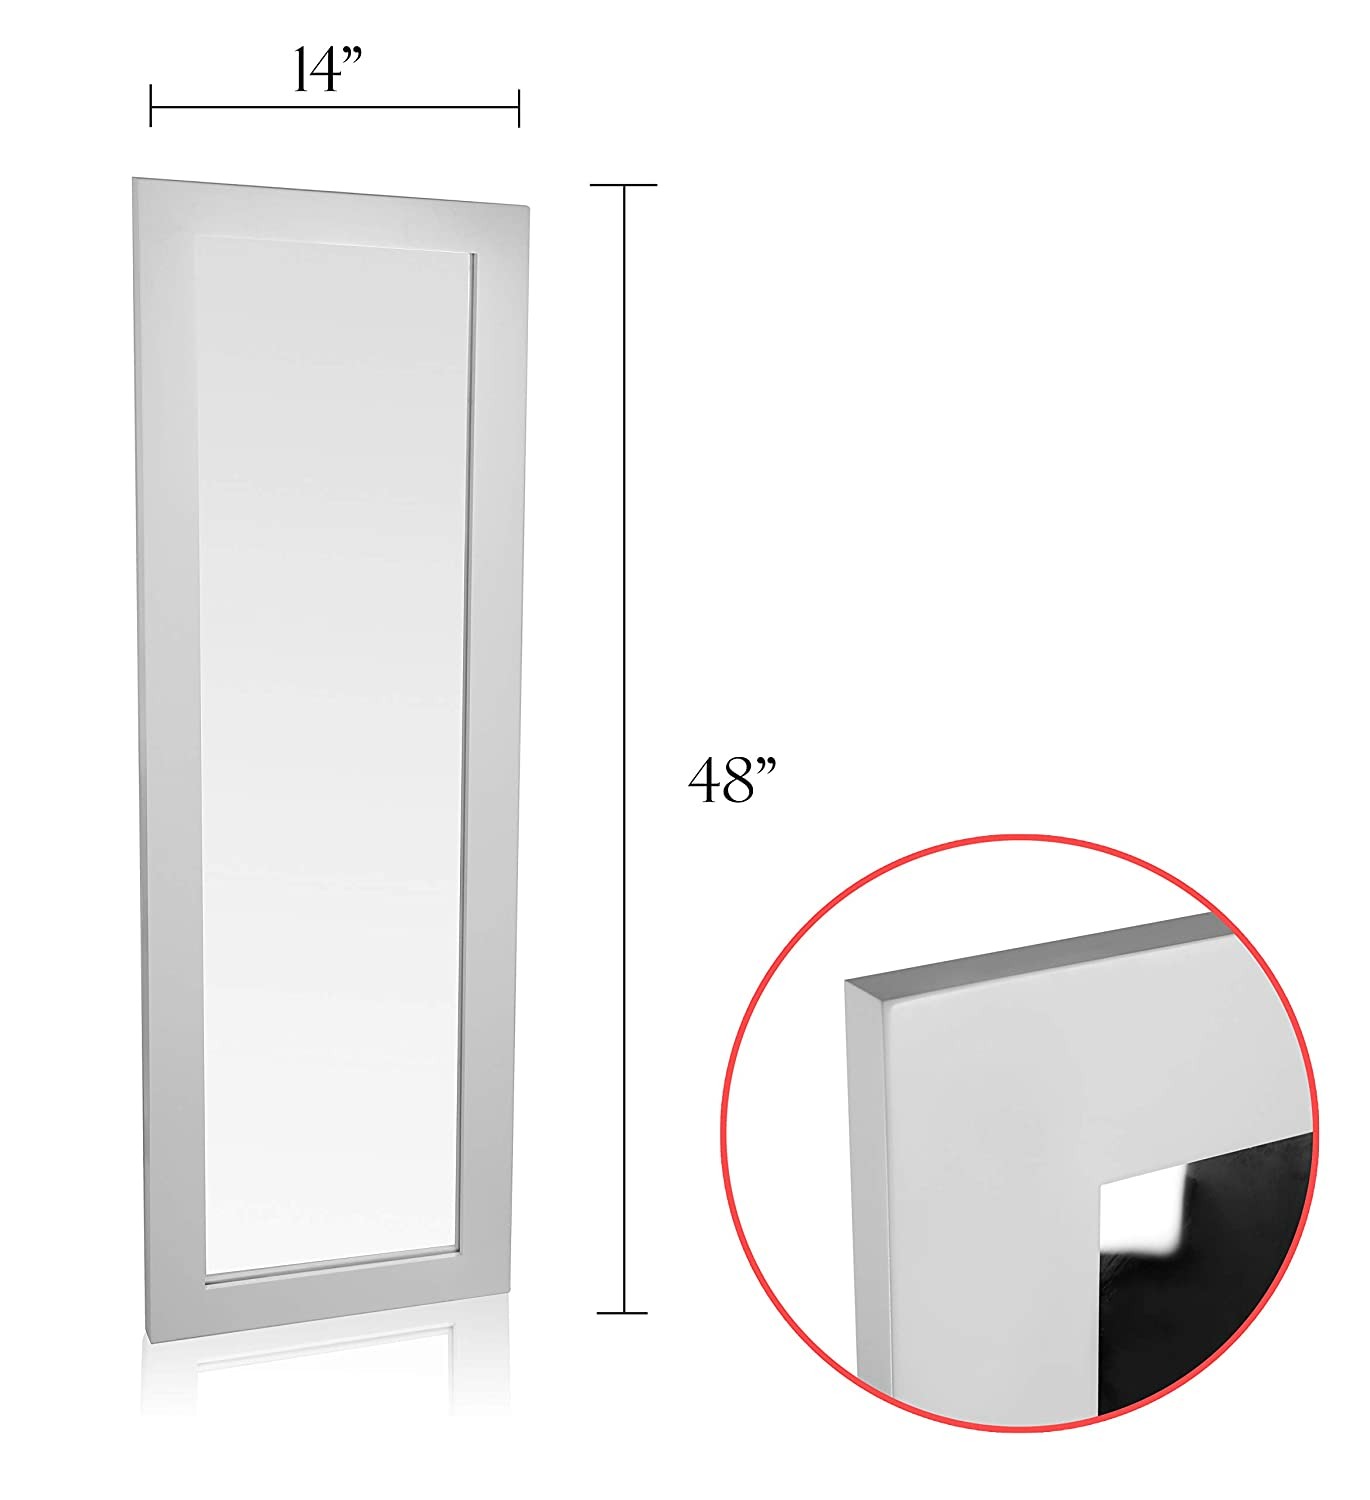 Organize City White Full Length Wall Mirror Over The Door Mirror Wall Rectangular with Installation and Instructions Included 14/'/' x 48/'/'